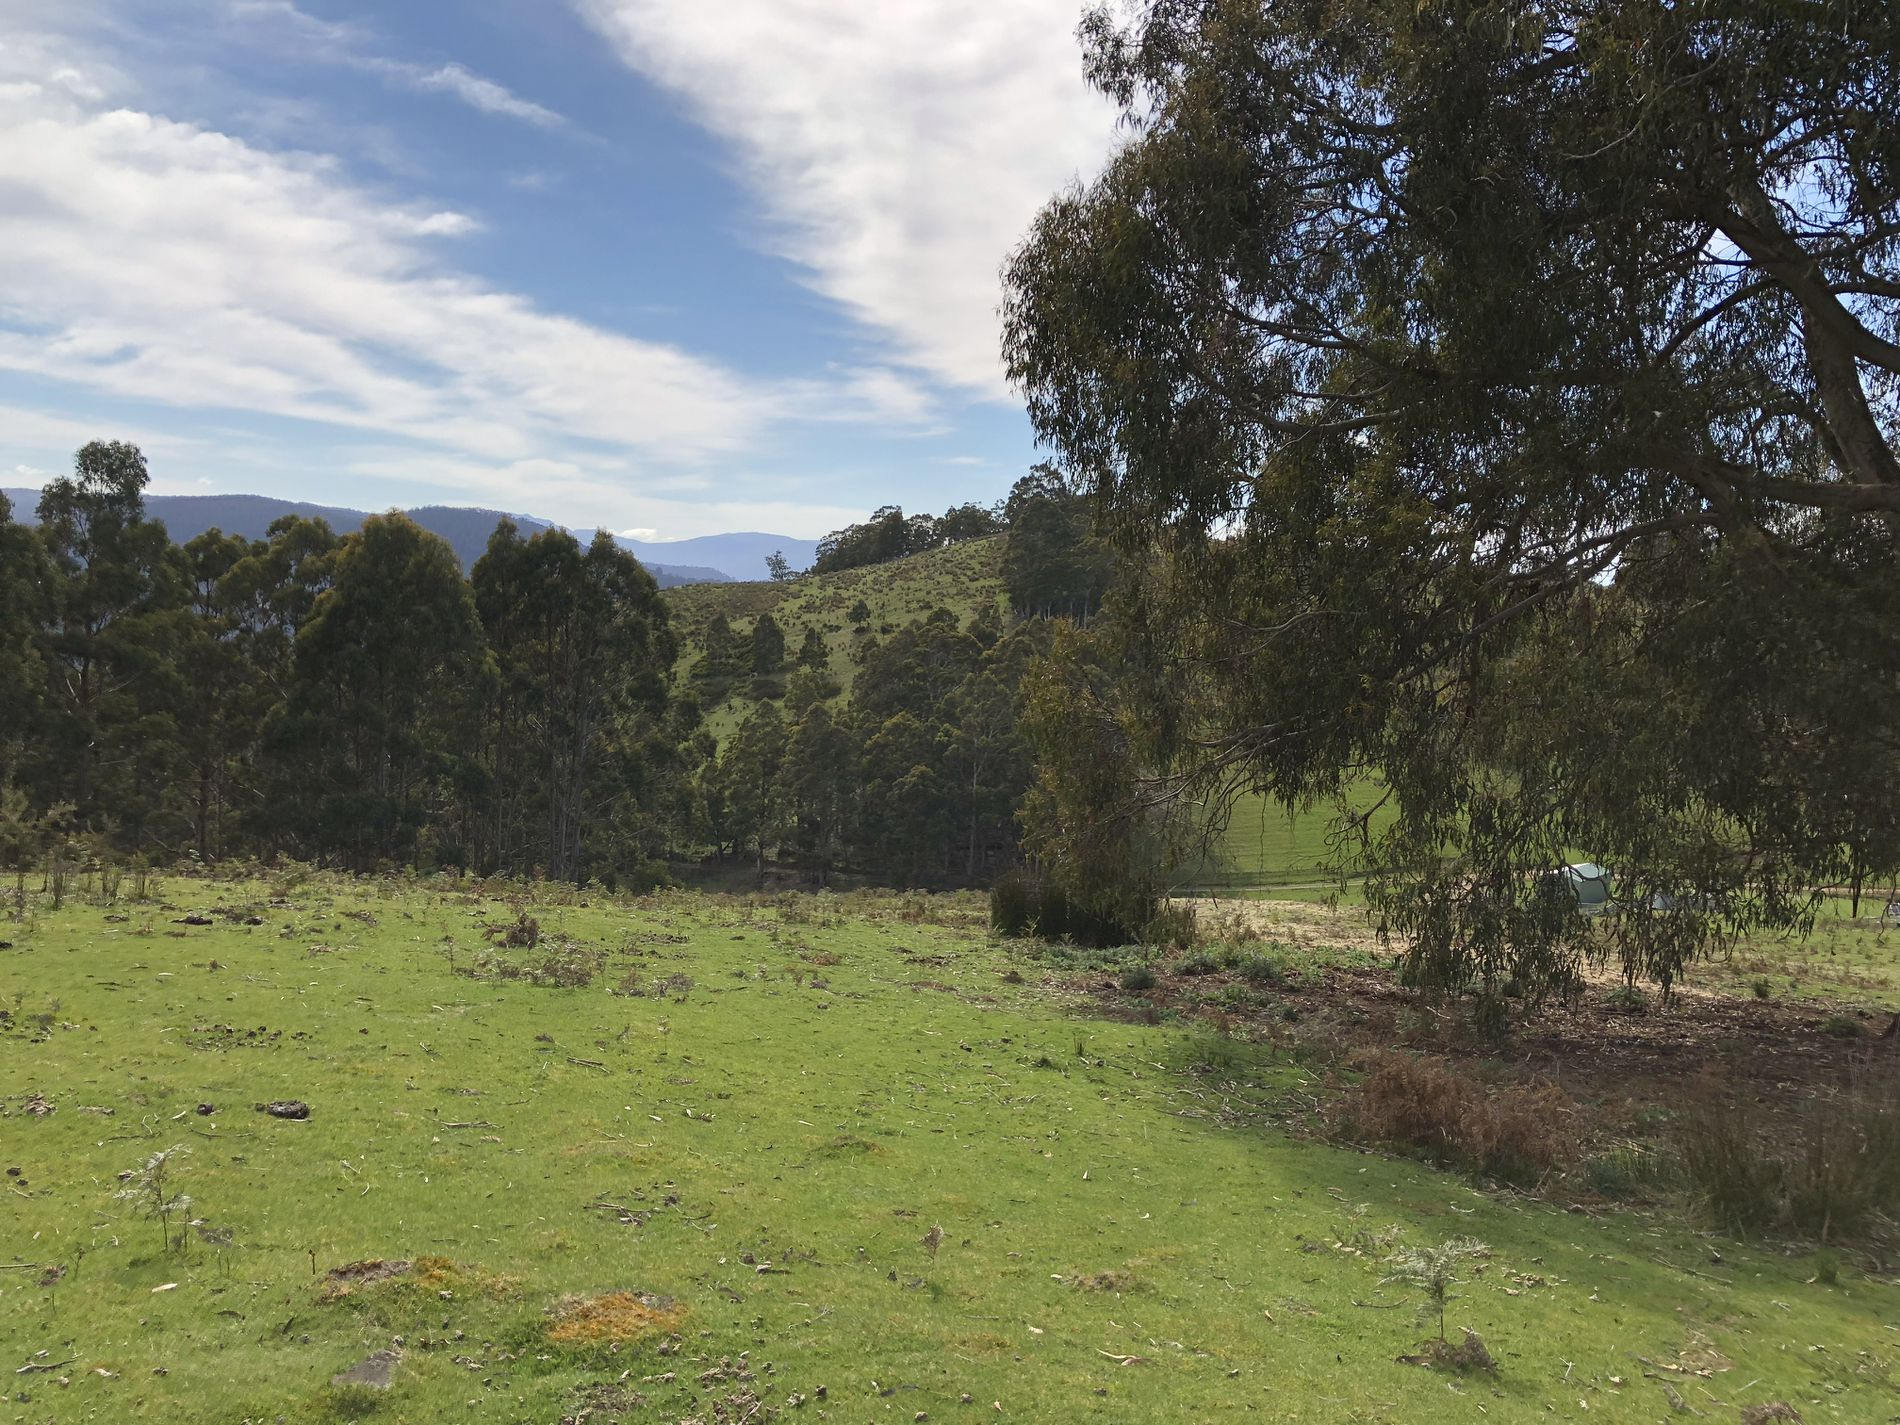 Lot 176545/2, Lightwood Creek Road, Glen Huon